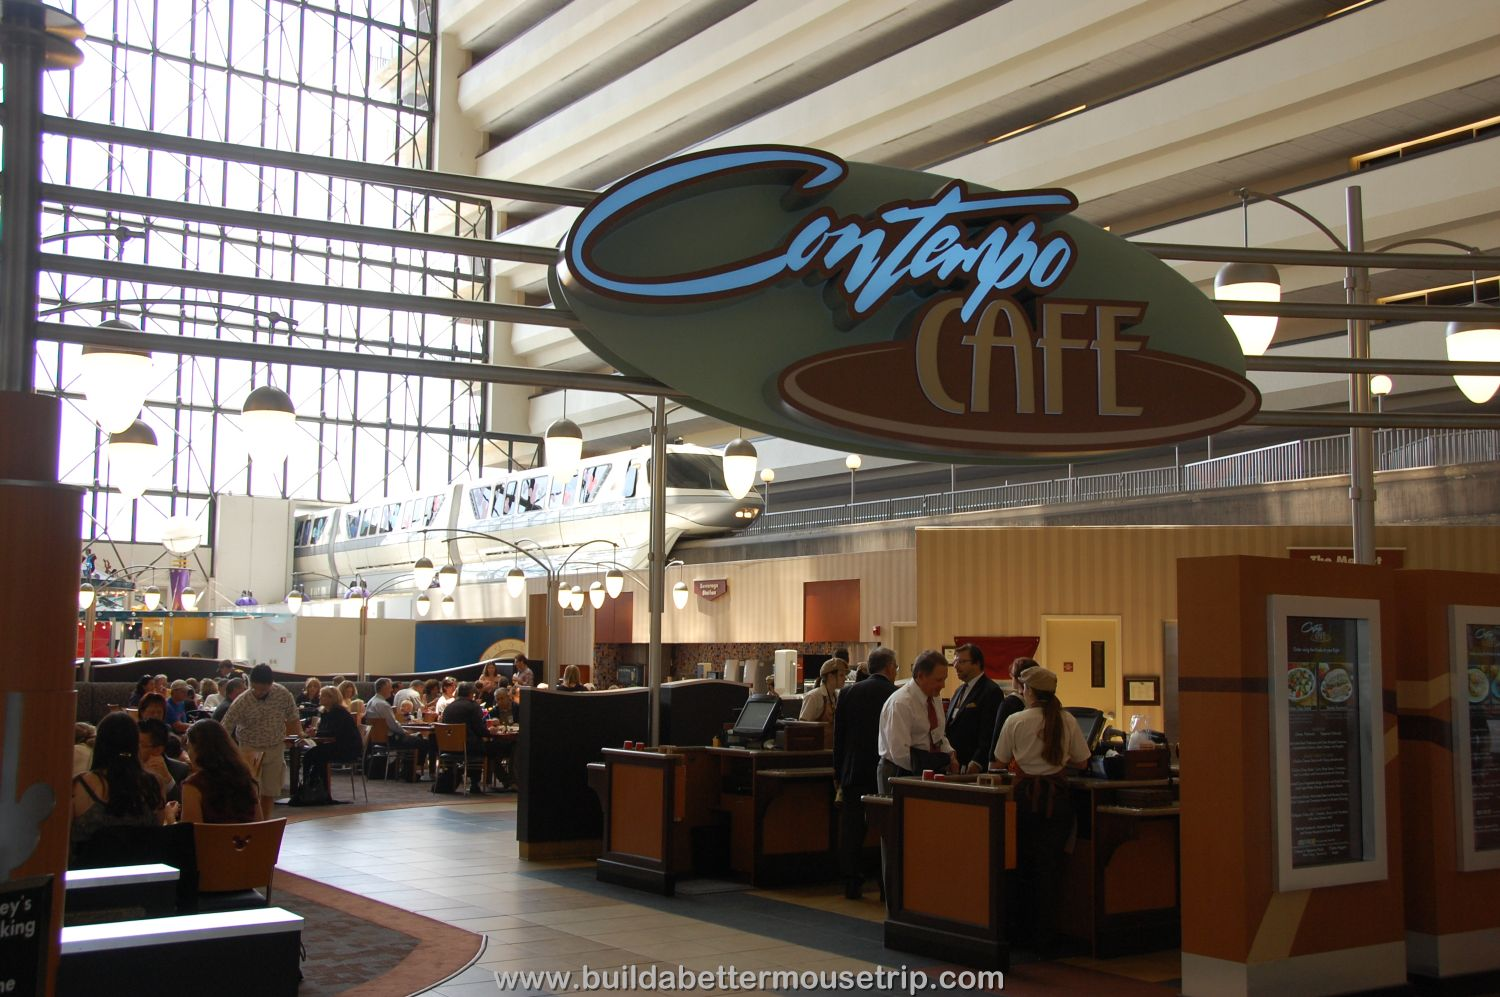 Contempo Cafe - you can watch the monorail glide by at this food court at Disney's Contemporary Resort at Disney World.